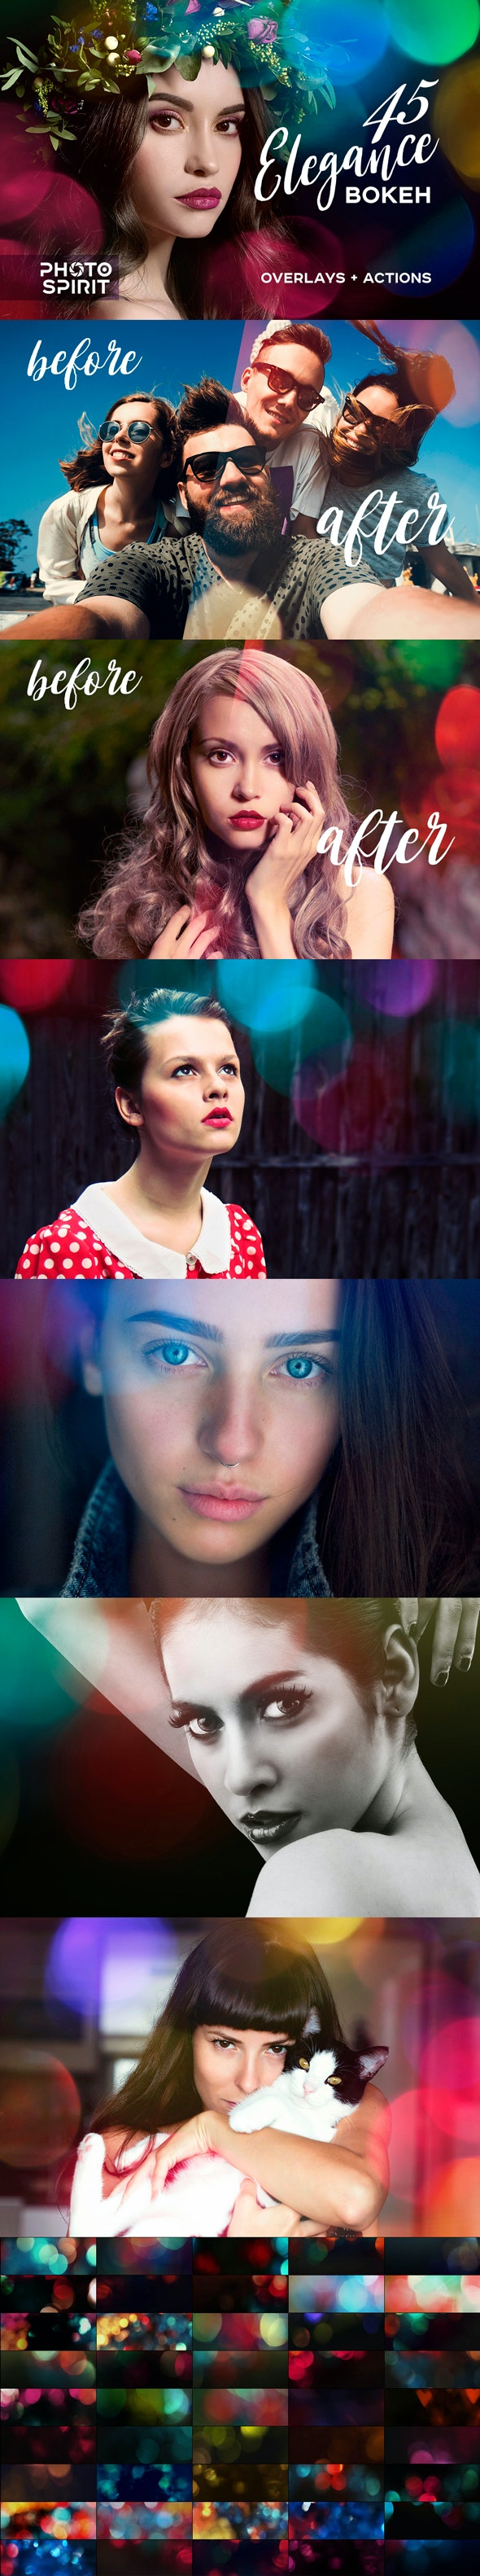 45 Elegance Bokeh Photo Overlays - Photo Effects Actions